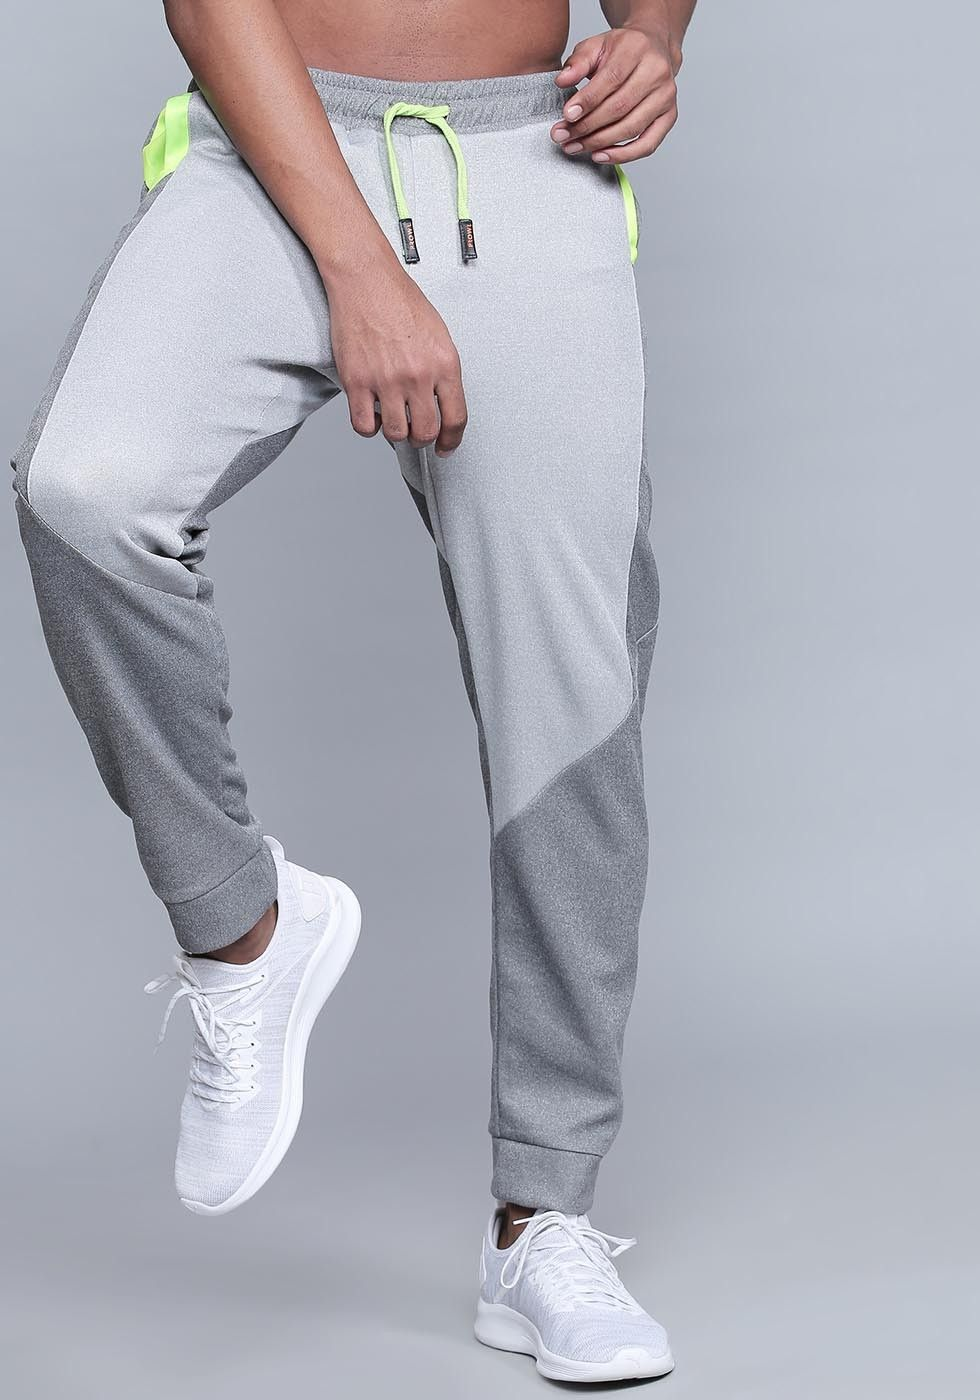 9c200d16dcf4a BOUNCE WORKOUT & TRAVEL ACTIVEWEAR JOGGERS BY PROWL ₹1,999.00 ...